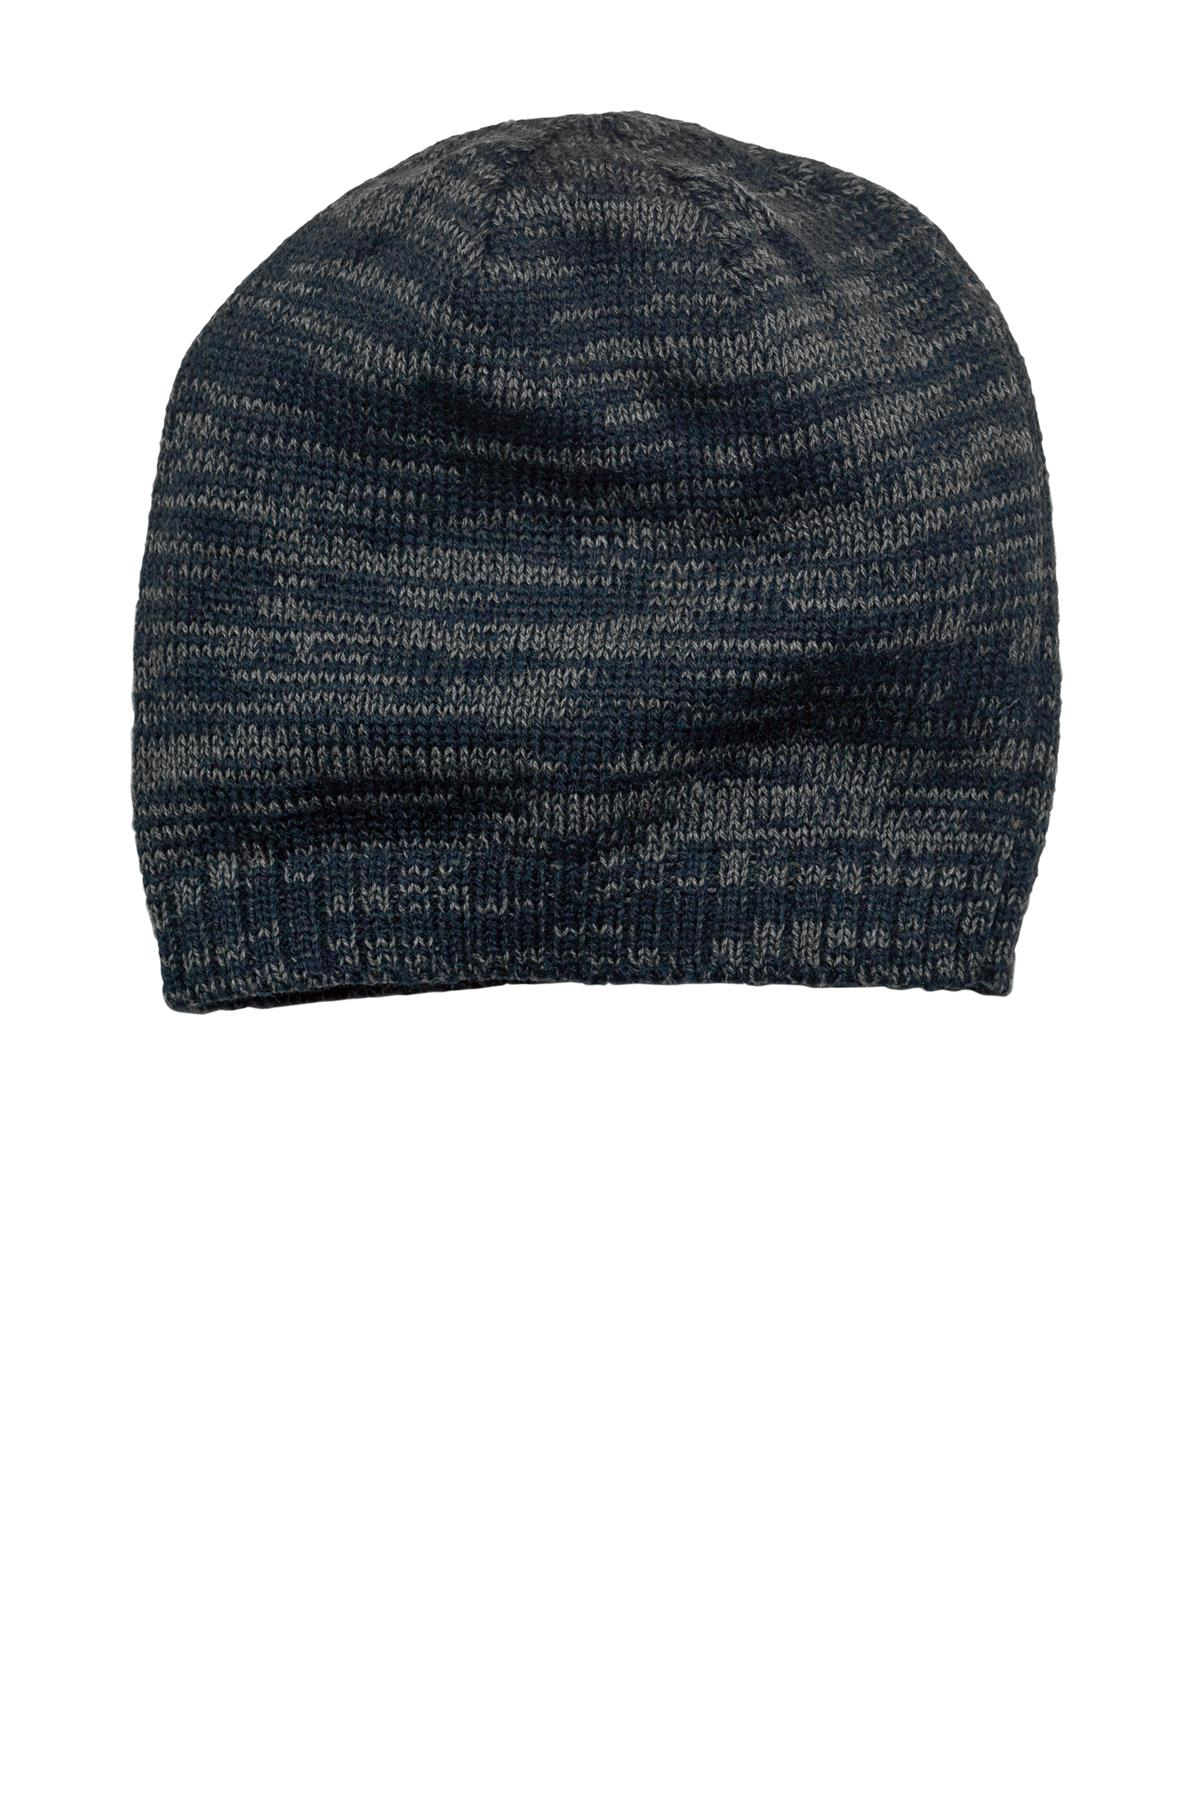 District ®  Spaced-Dyed Beanie DT620 - New Navy/ Charcoal